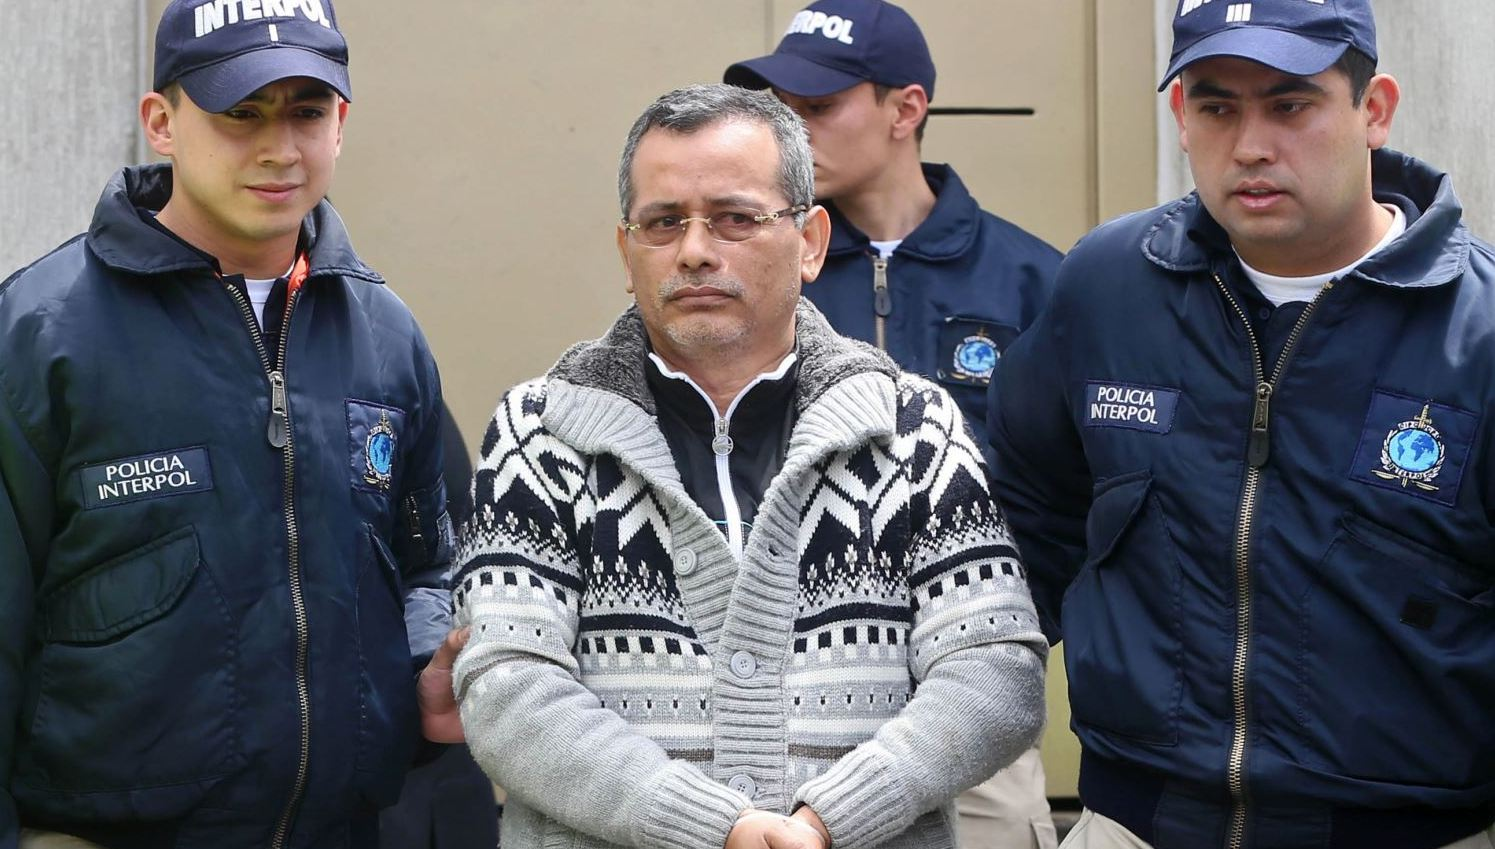 Police foil assassination plot against Orellana prosecutor